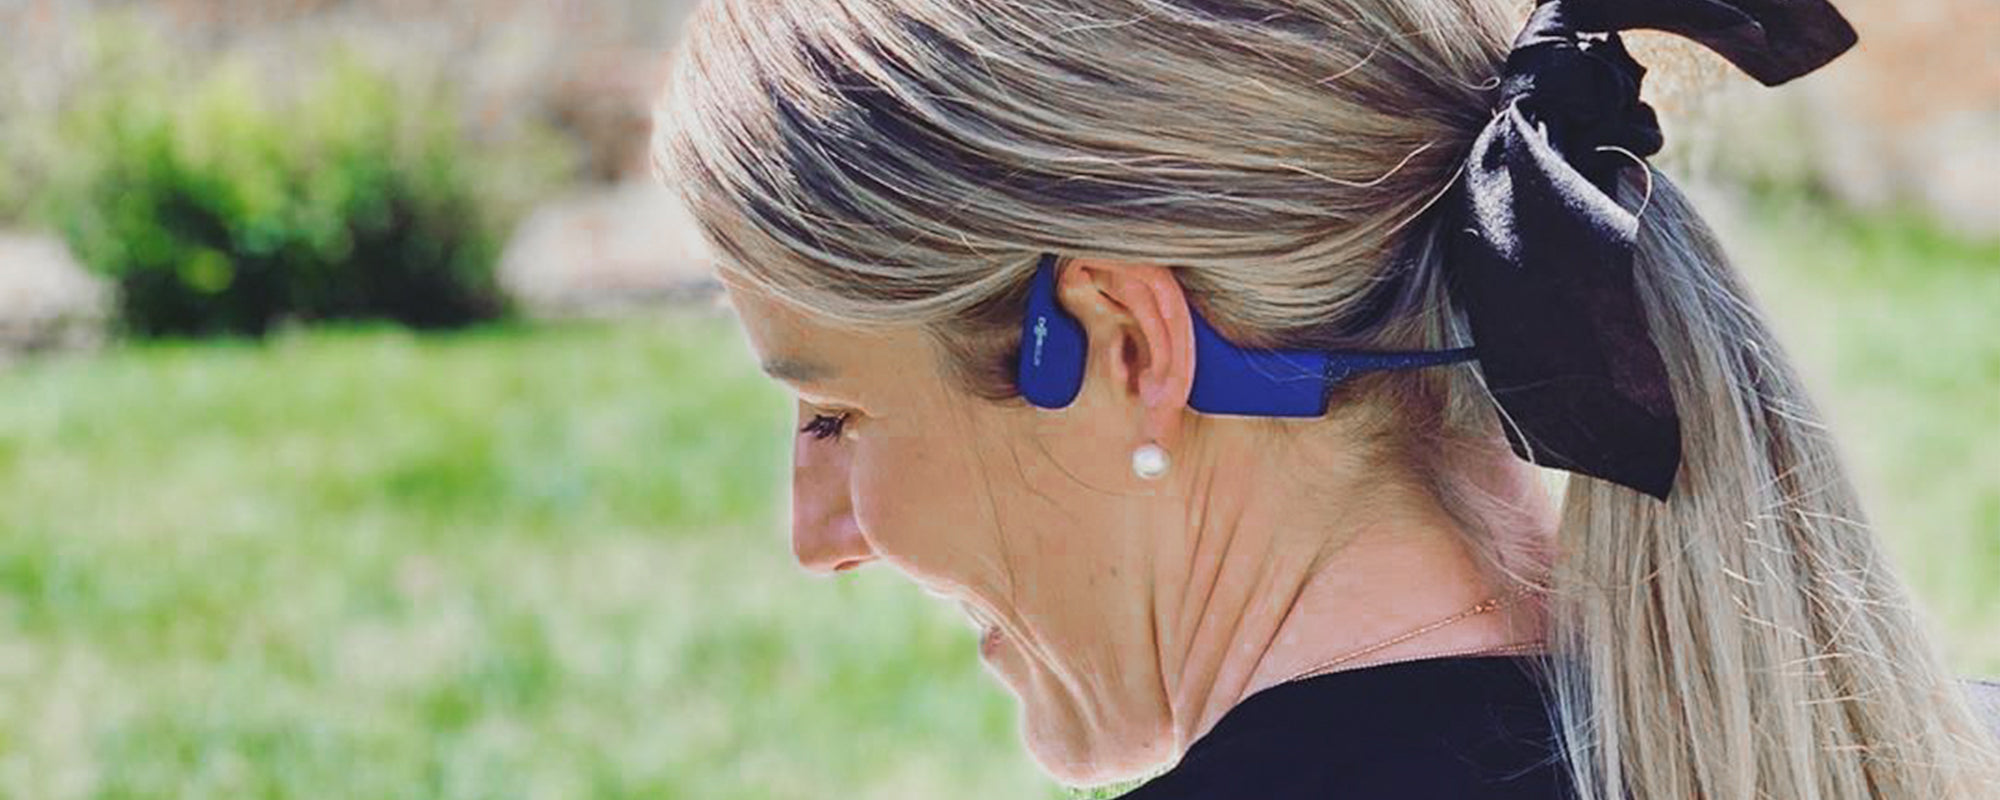 Olympic swimmer Missy Franklin wearing AfterShokz Xtrainerz headphones